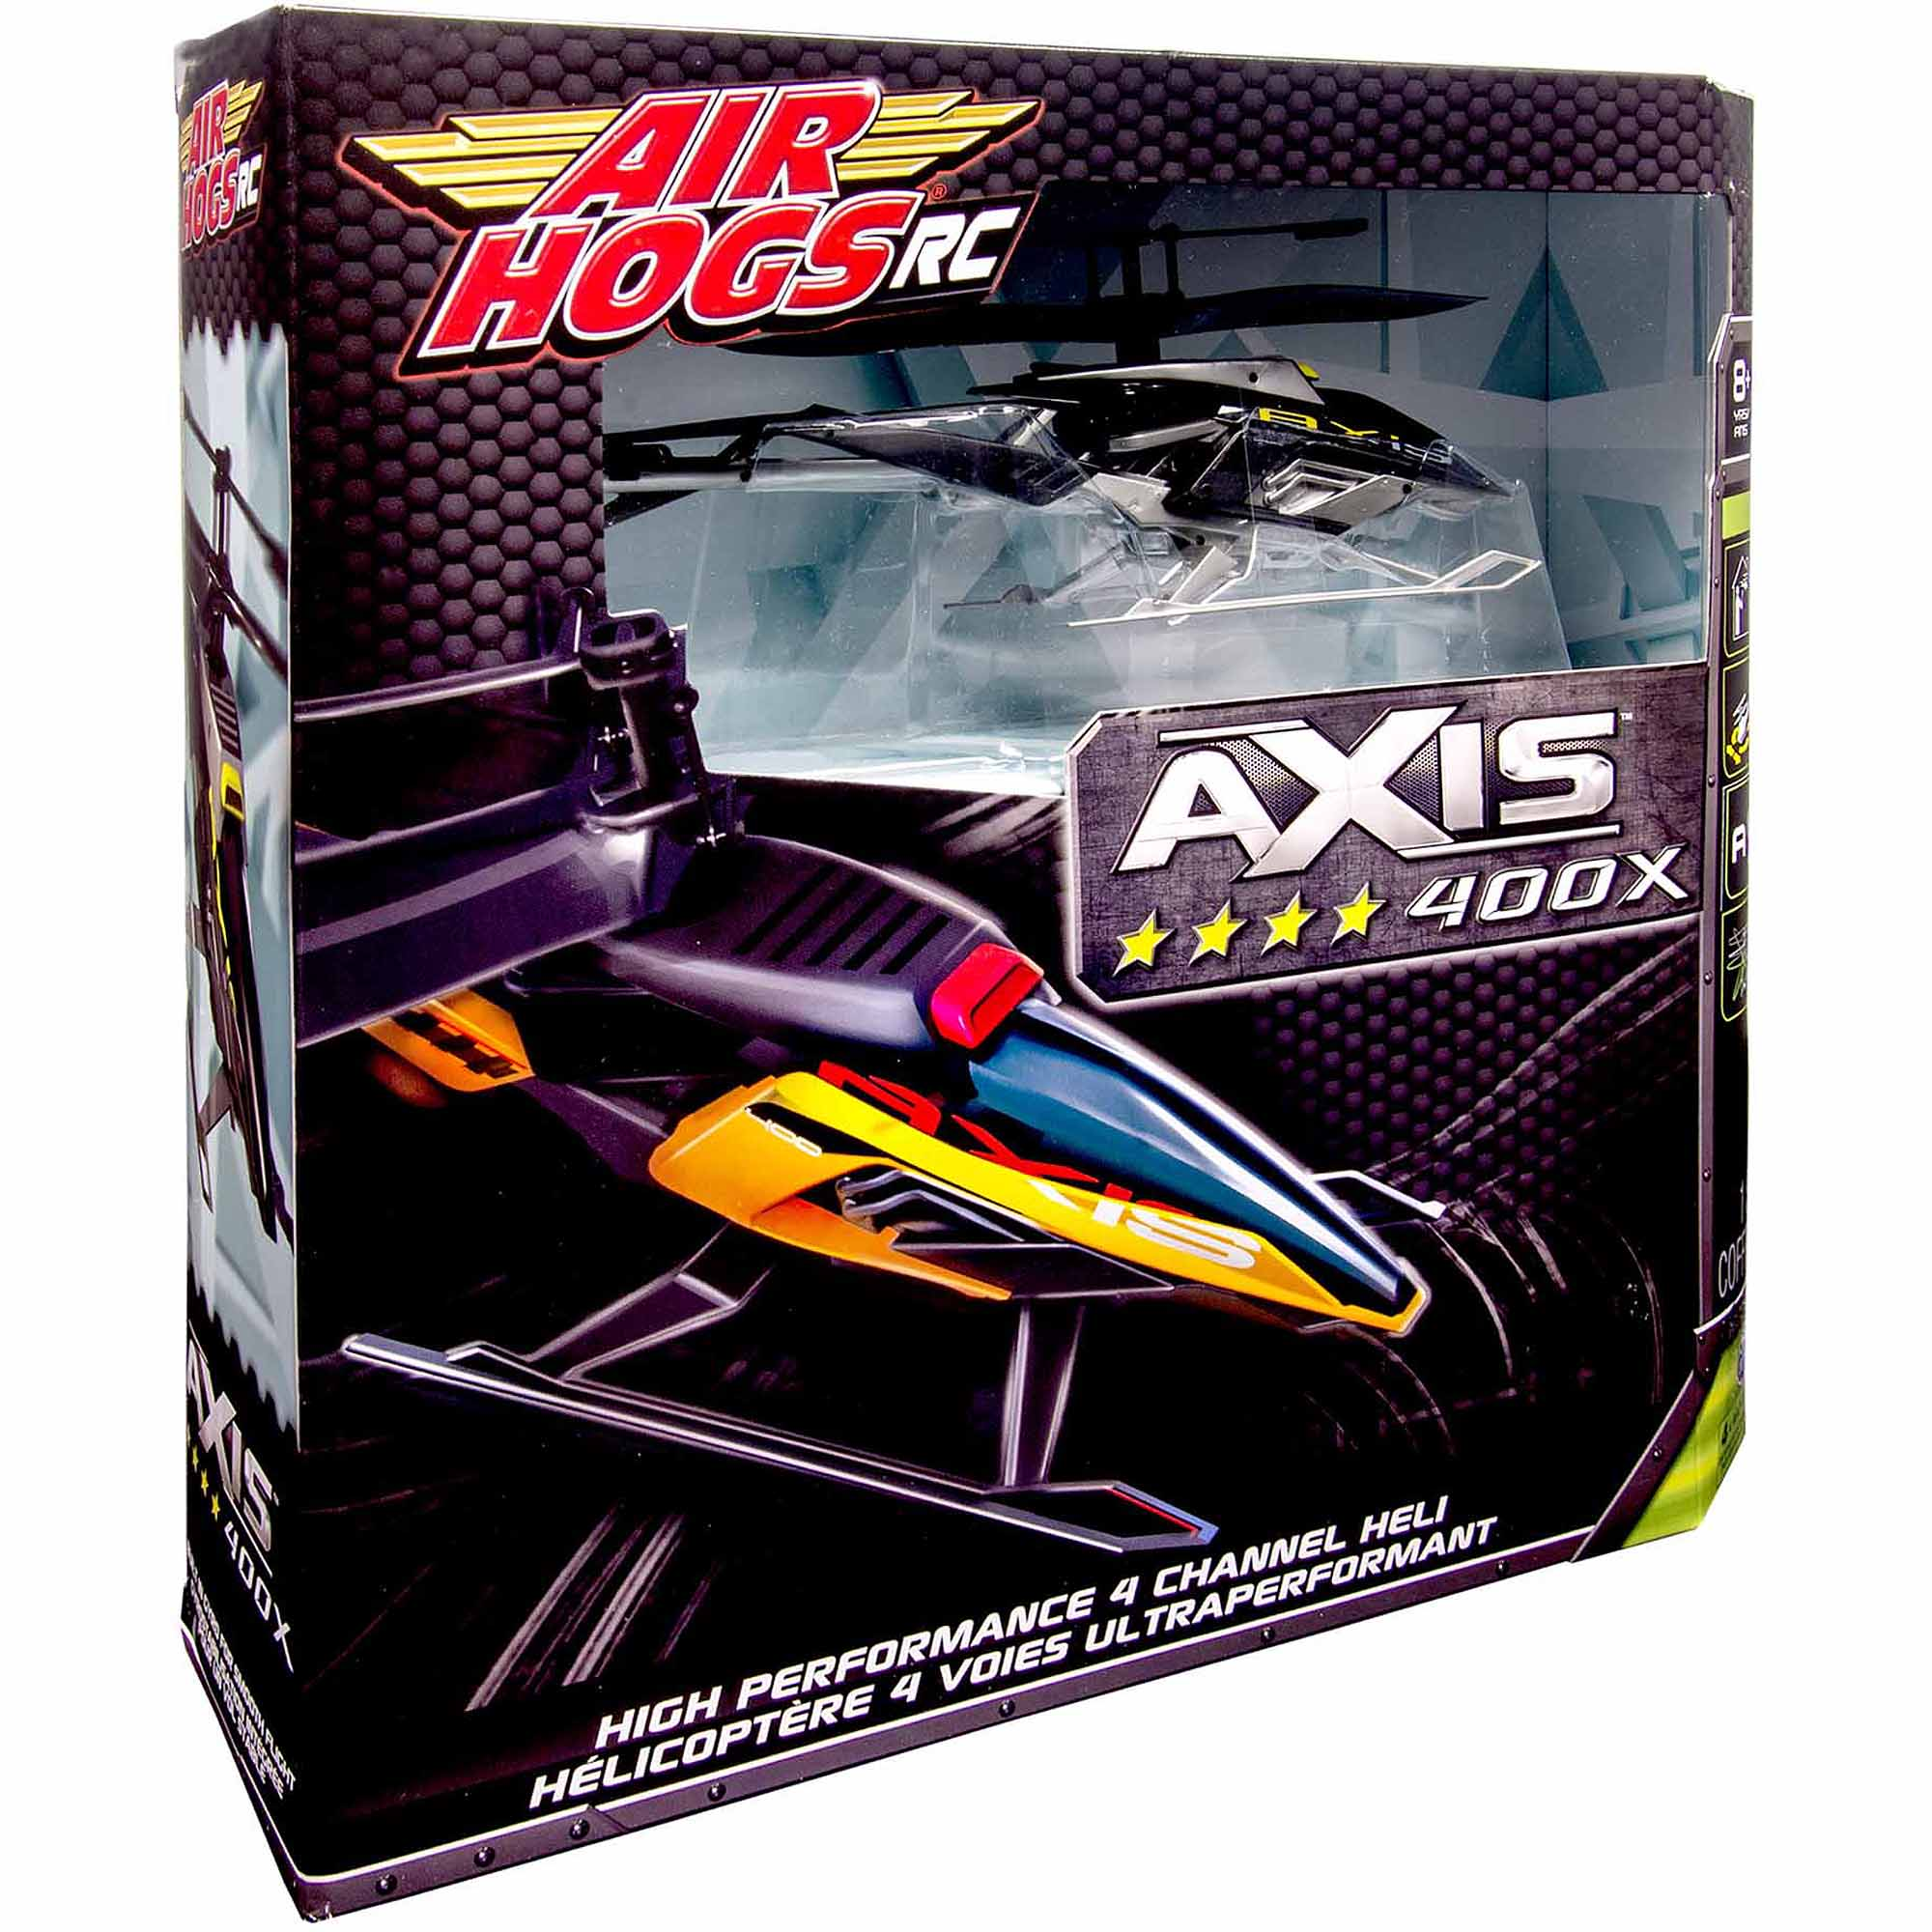 Air Hogs RC Axis 400x R/C Helicopter- in colors Black/Silver & Black/Orange  - Walmart.com